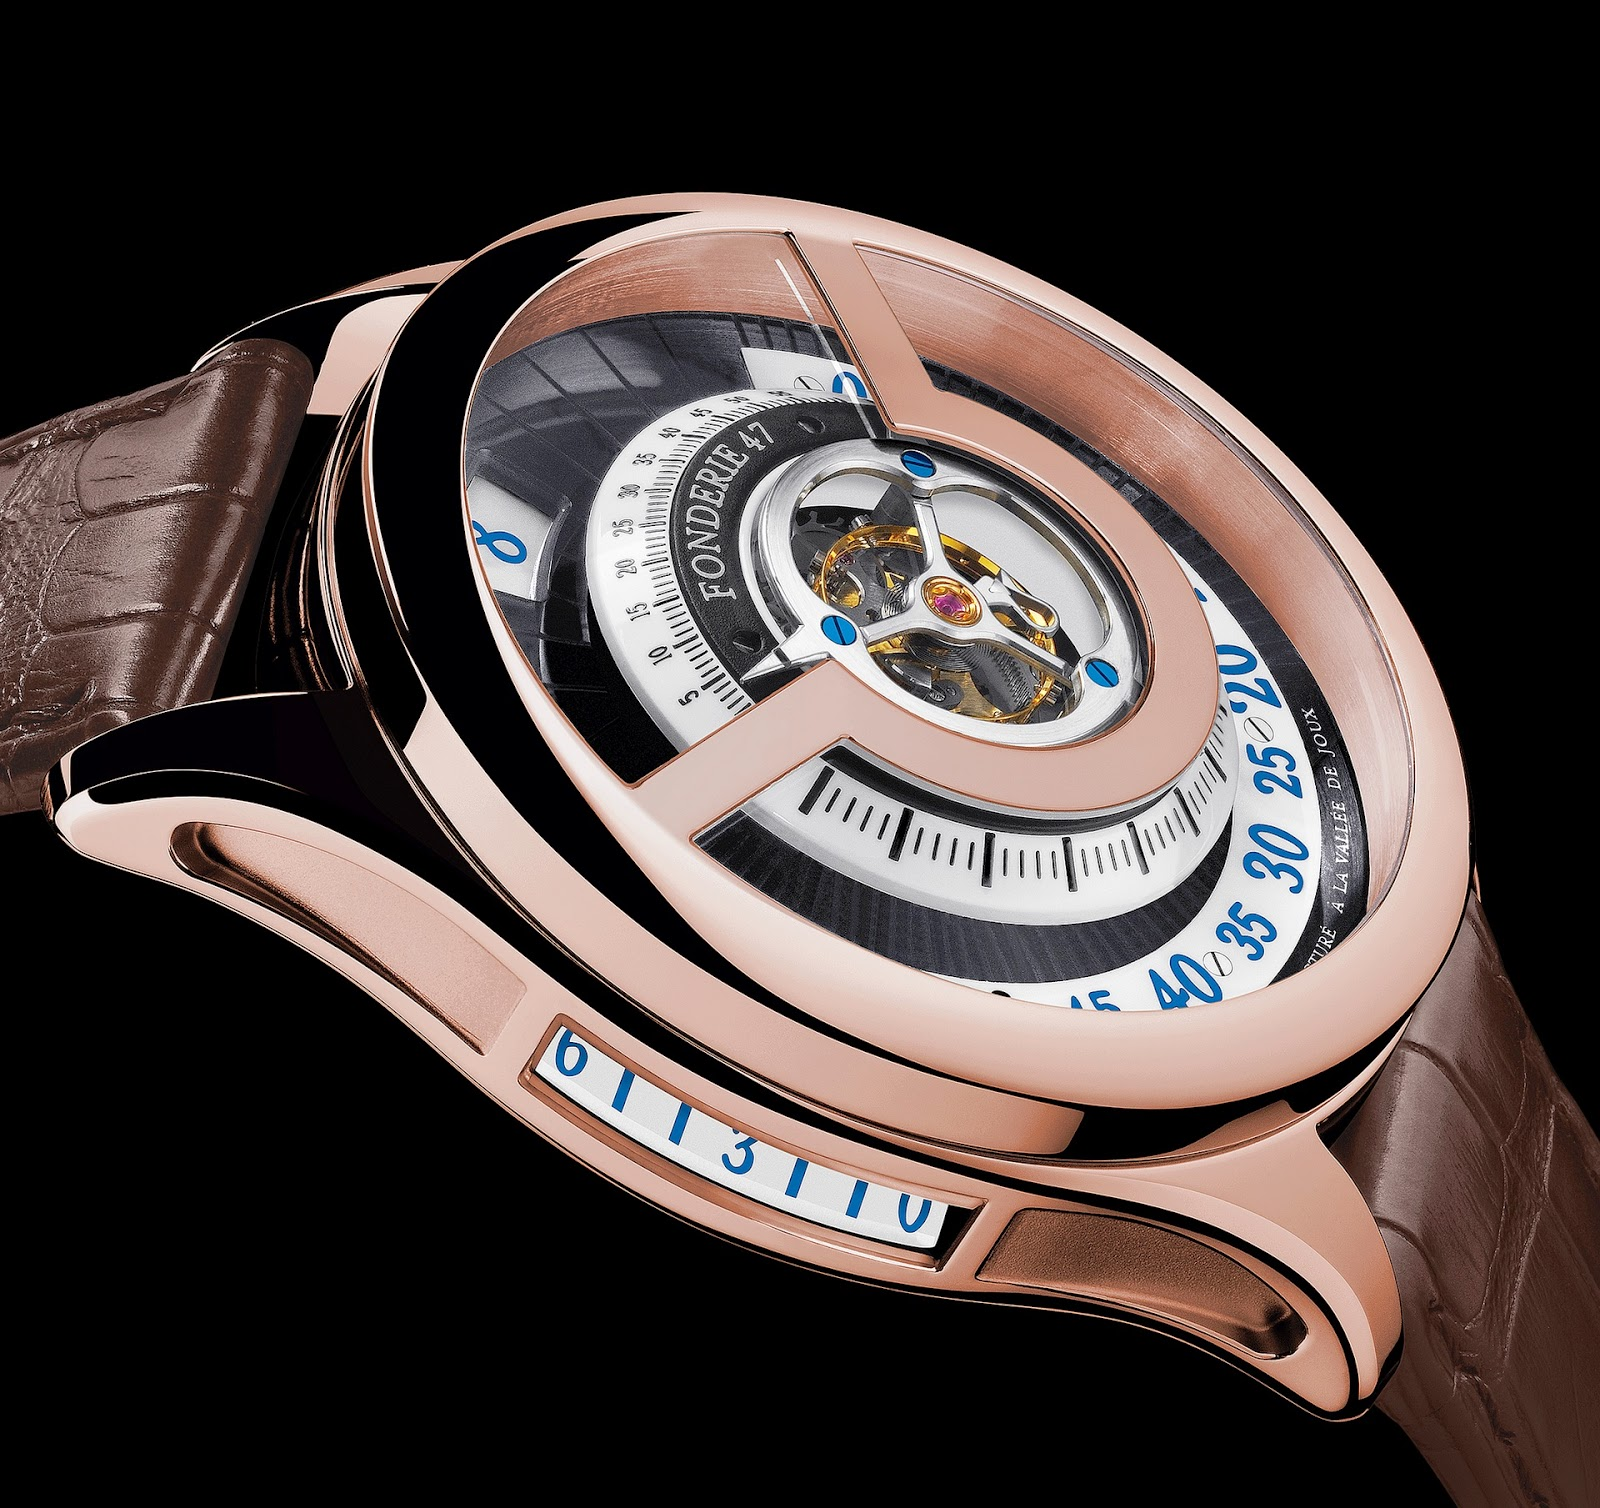 Montre Fonderie 47 Inversion Principle